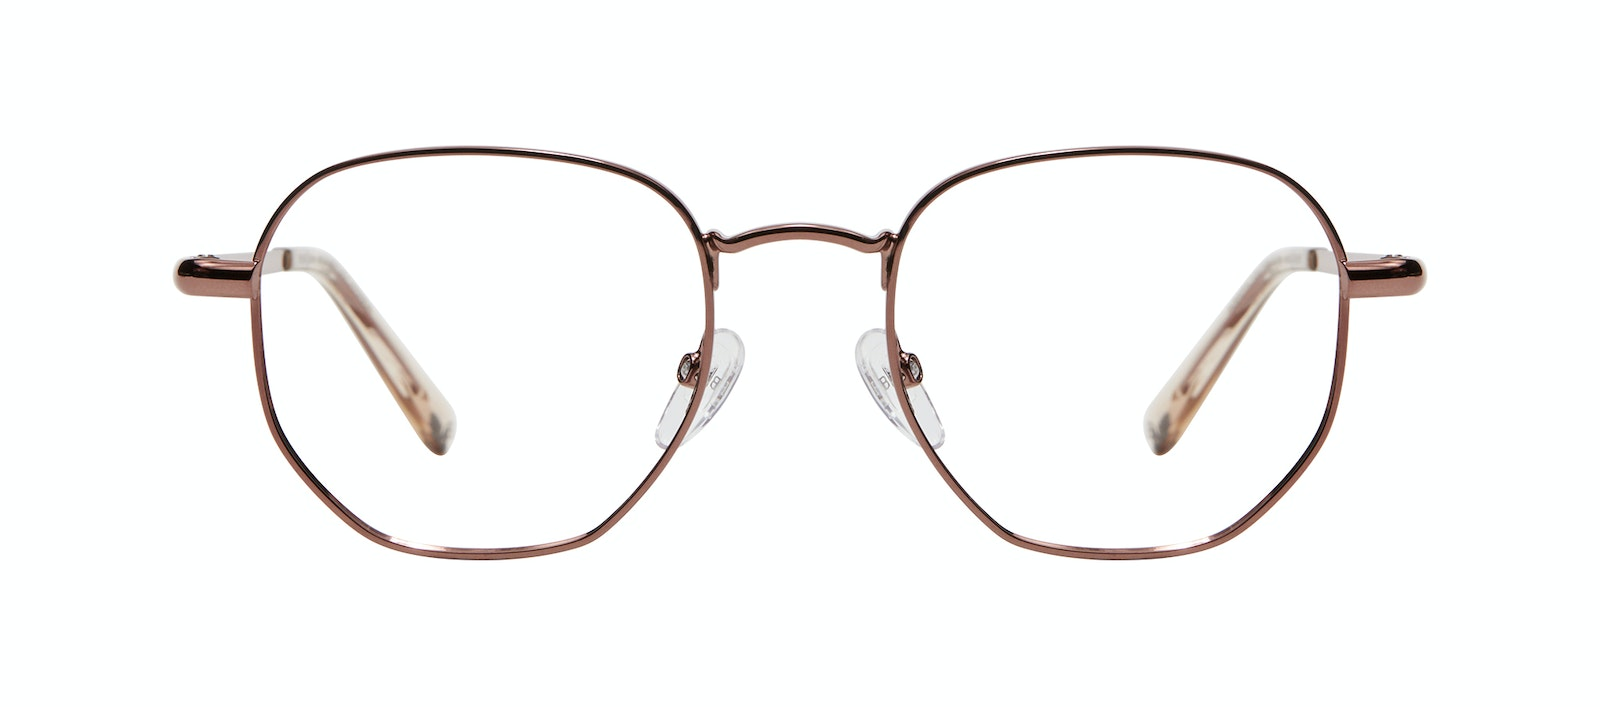 Affordable Fashion Glasses Round Eyeglasses Women Aura Copper Front